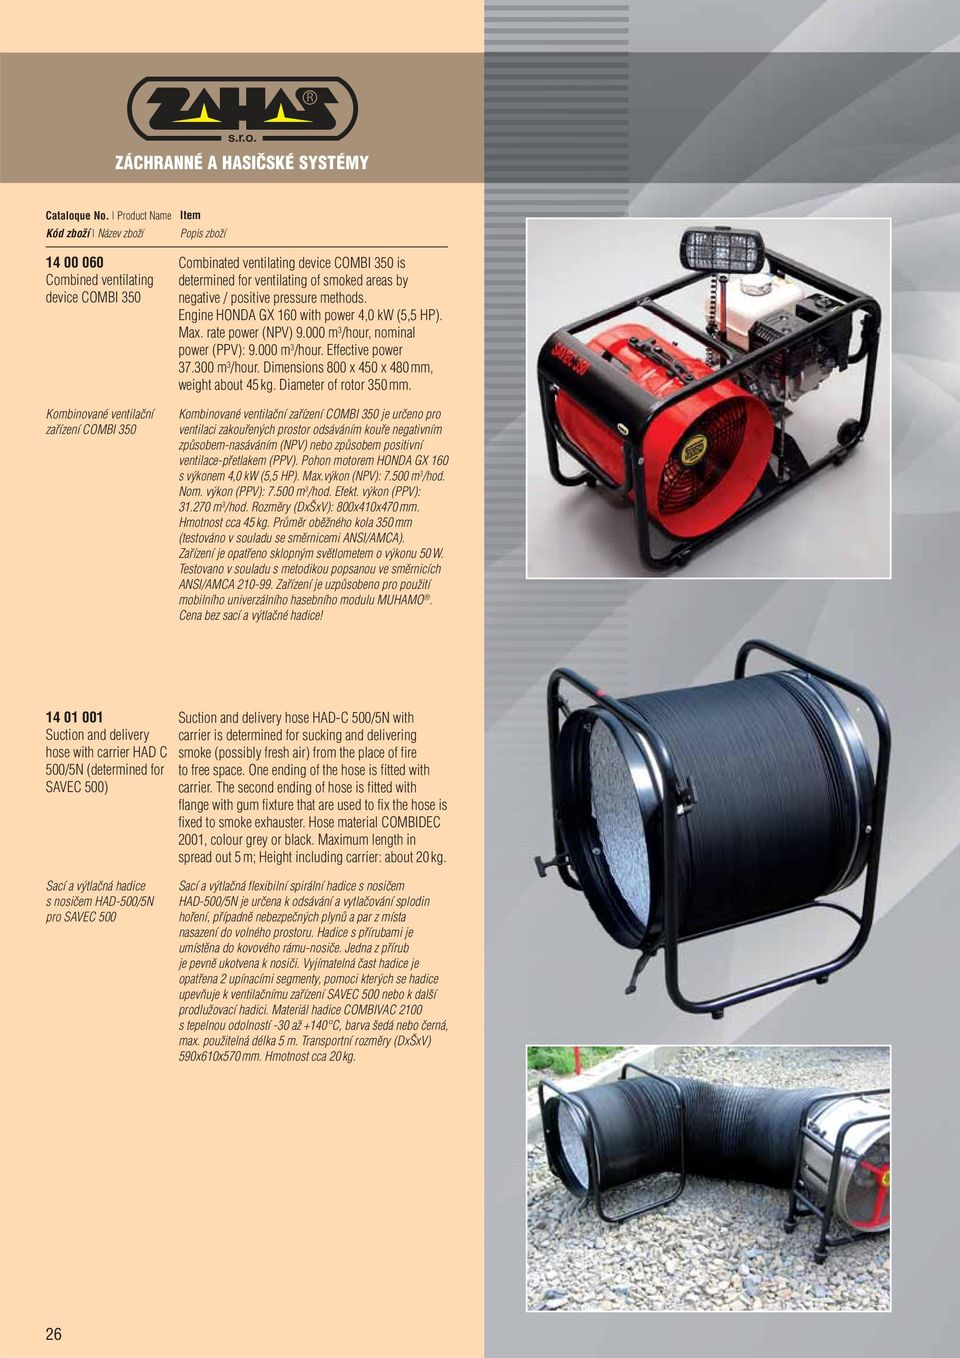 300 m 3 /hour. Dimensions 800 x 450 x 480 mm, weight about 45 kg. Diameter of rotor 350 mm.